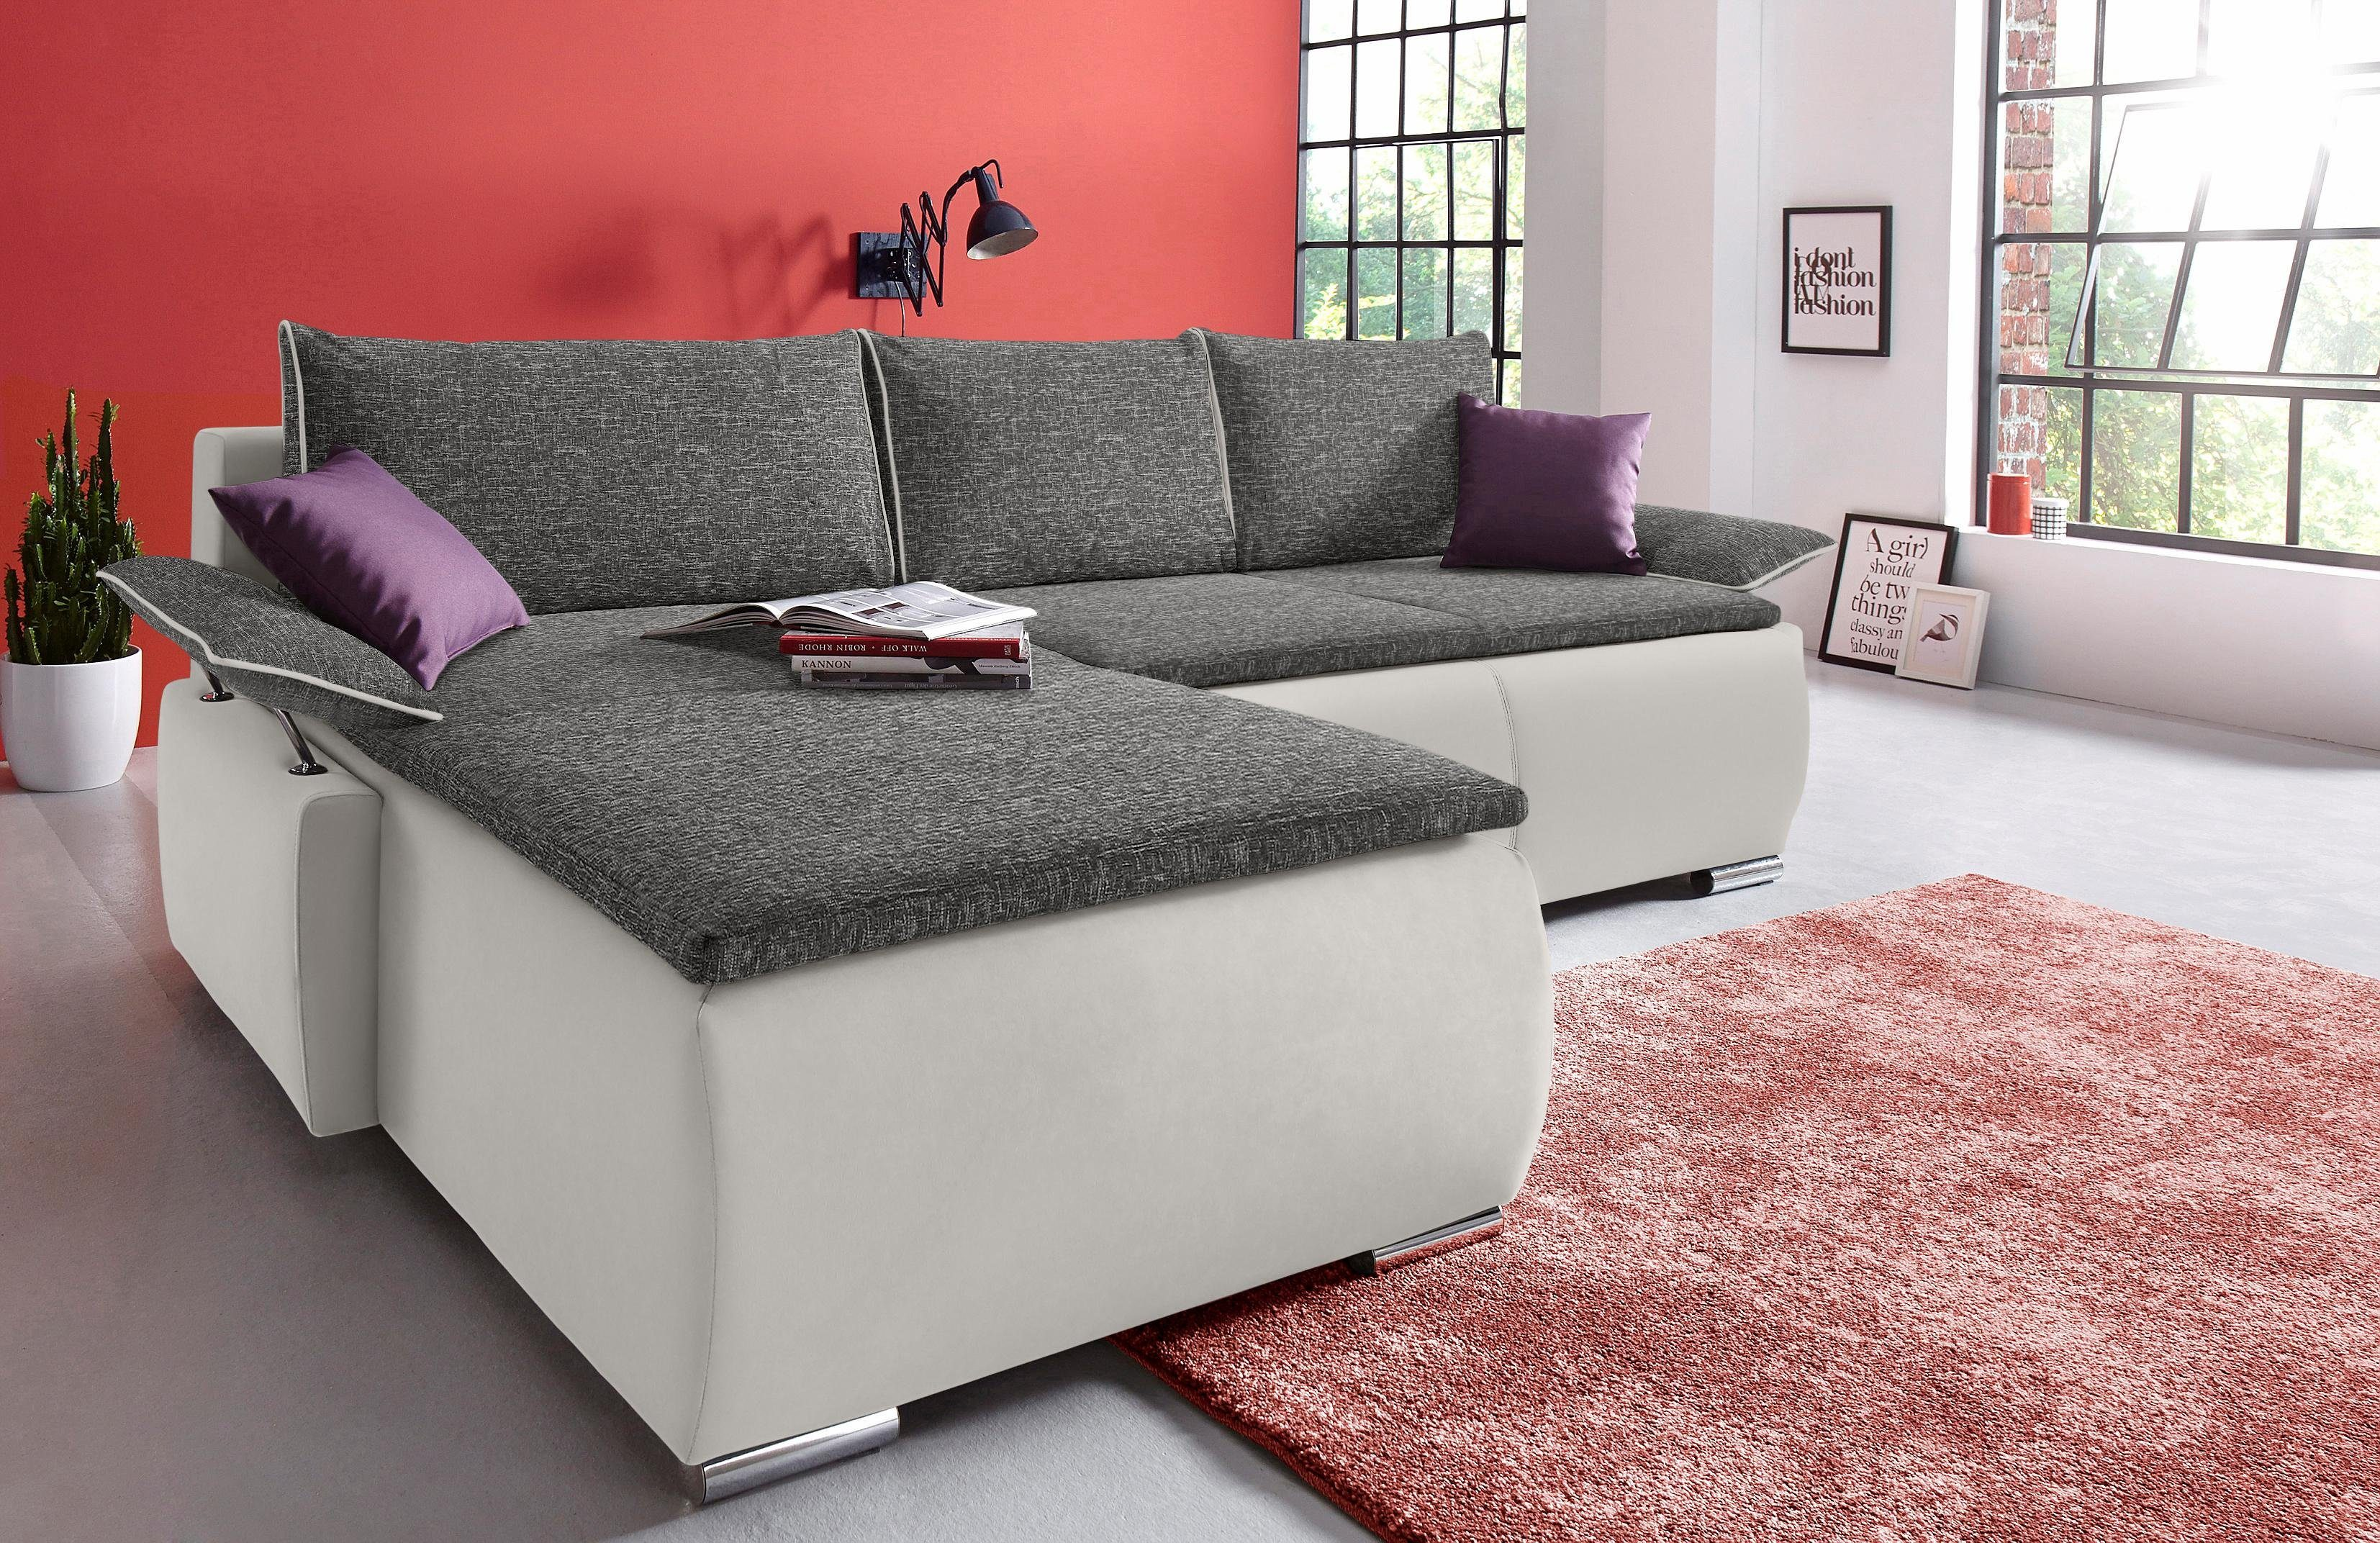 Collection Ab Polsterecke Mit Boxspring Aufbau Otto - Ecksofa Senioren